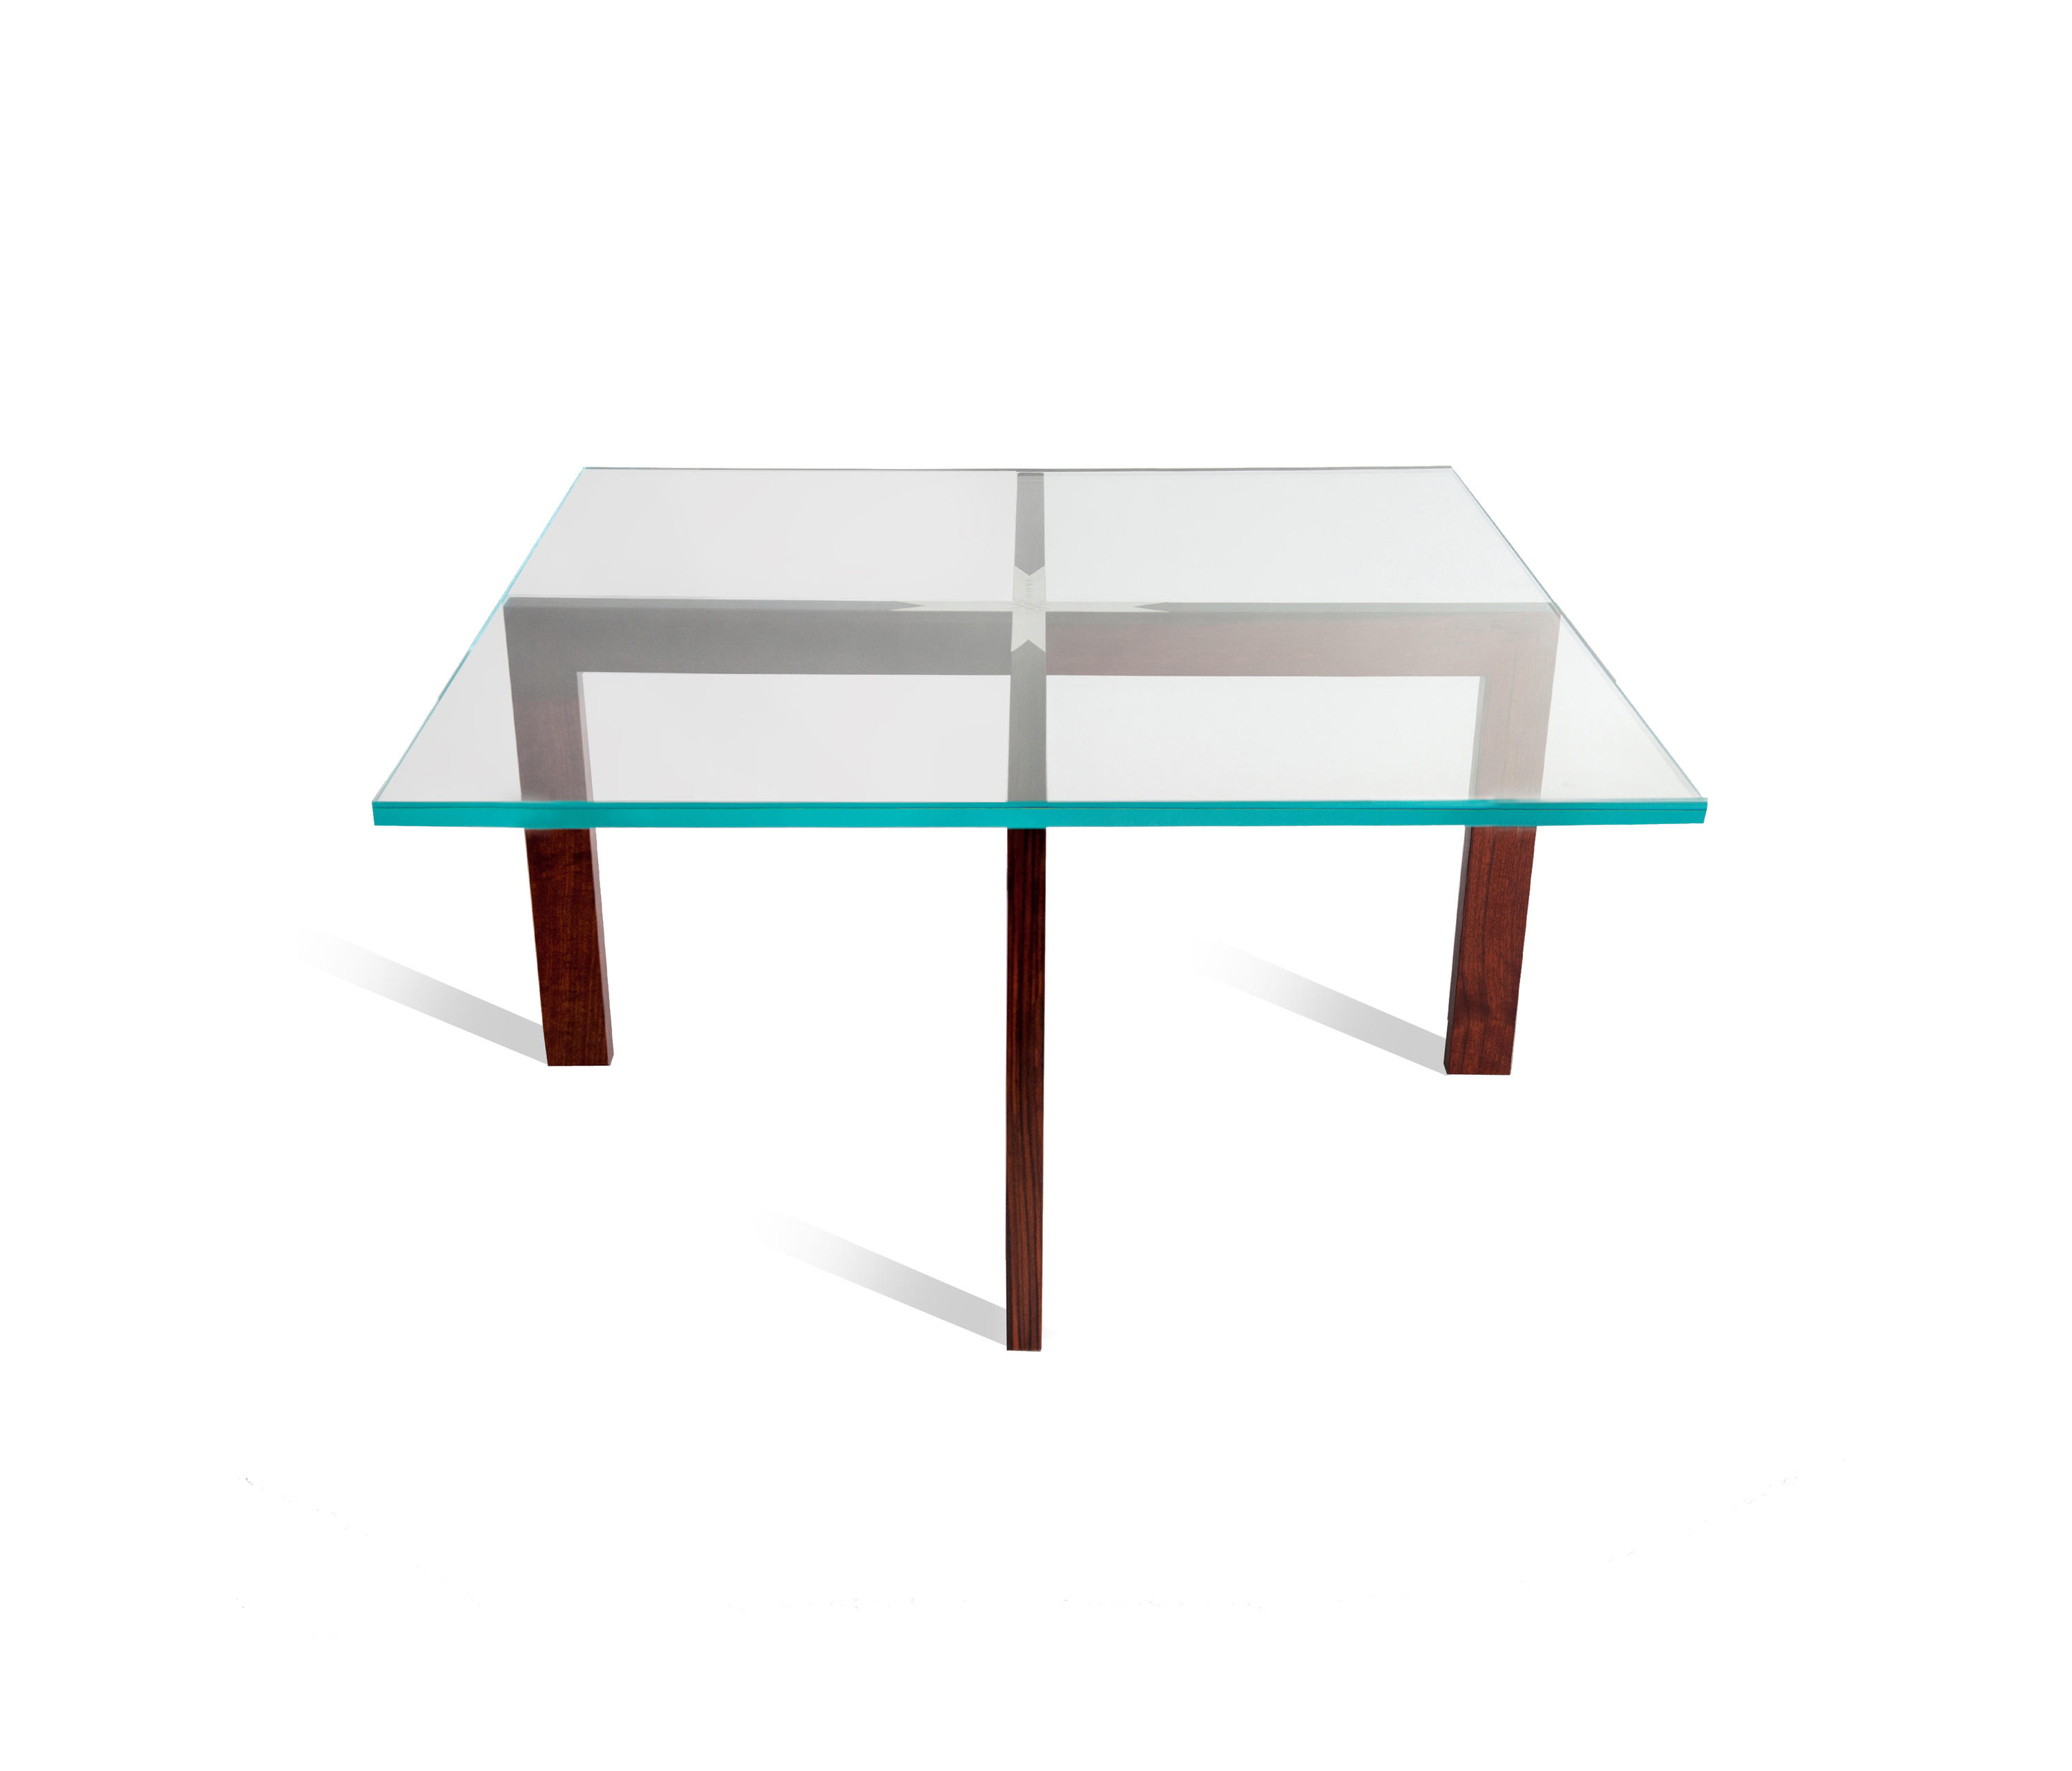 Couchtisch Ivar Martin Coffee Table Couchtische Von Ivar London Architonic